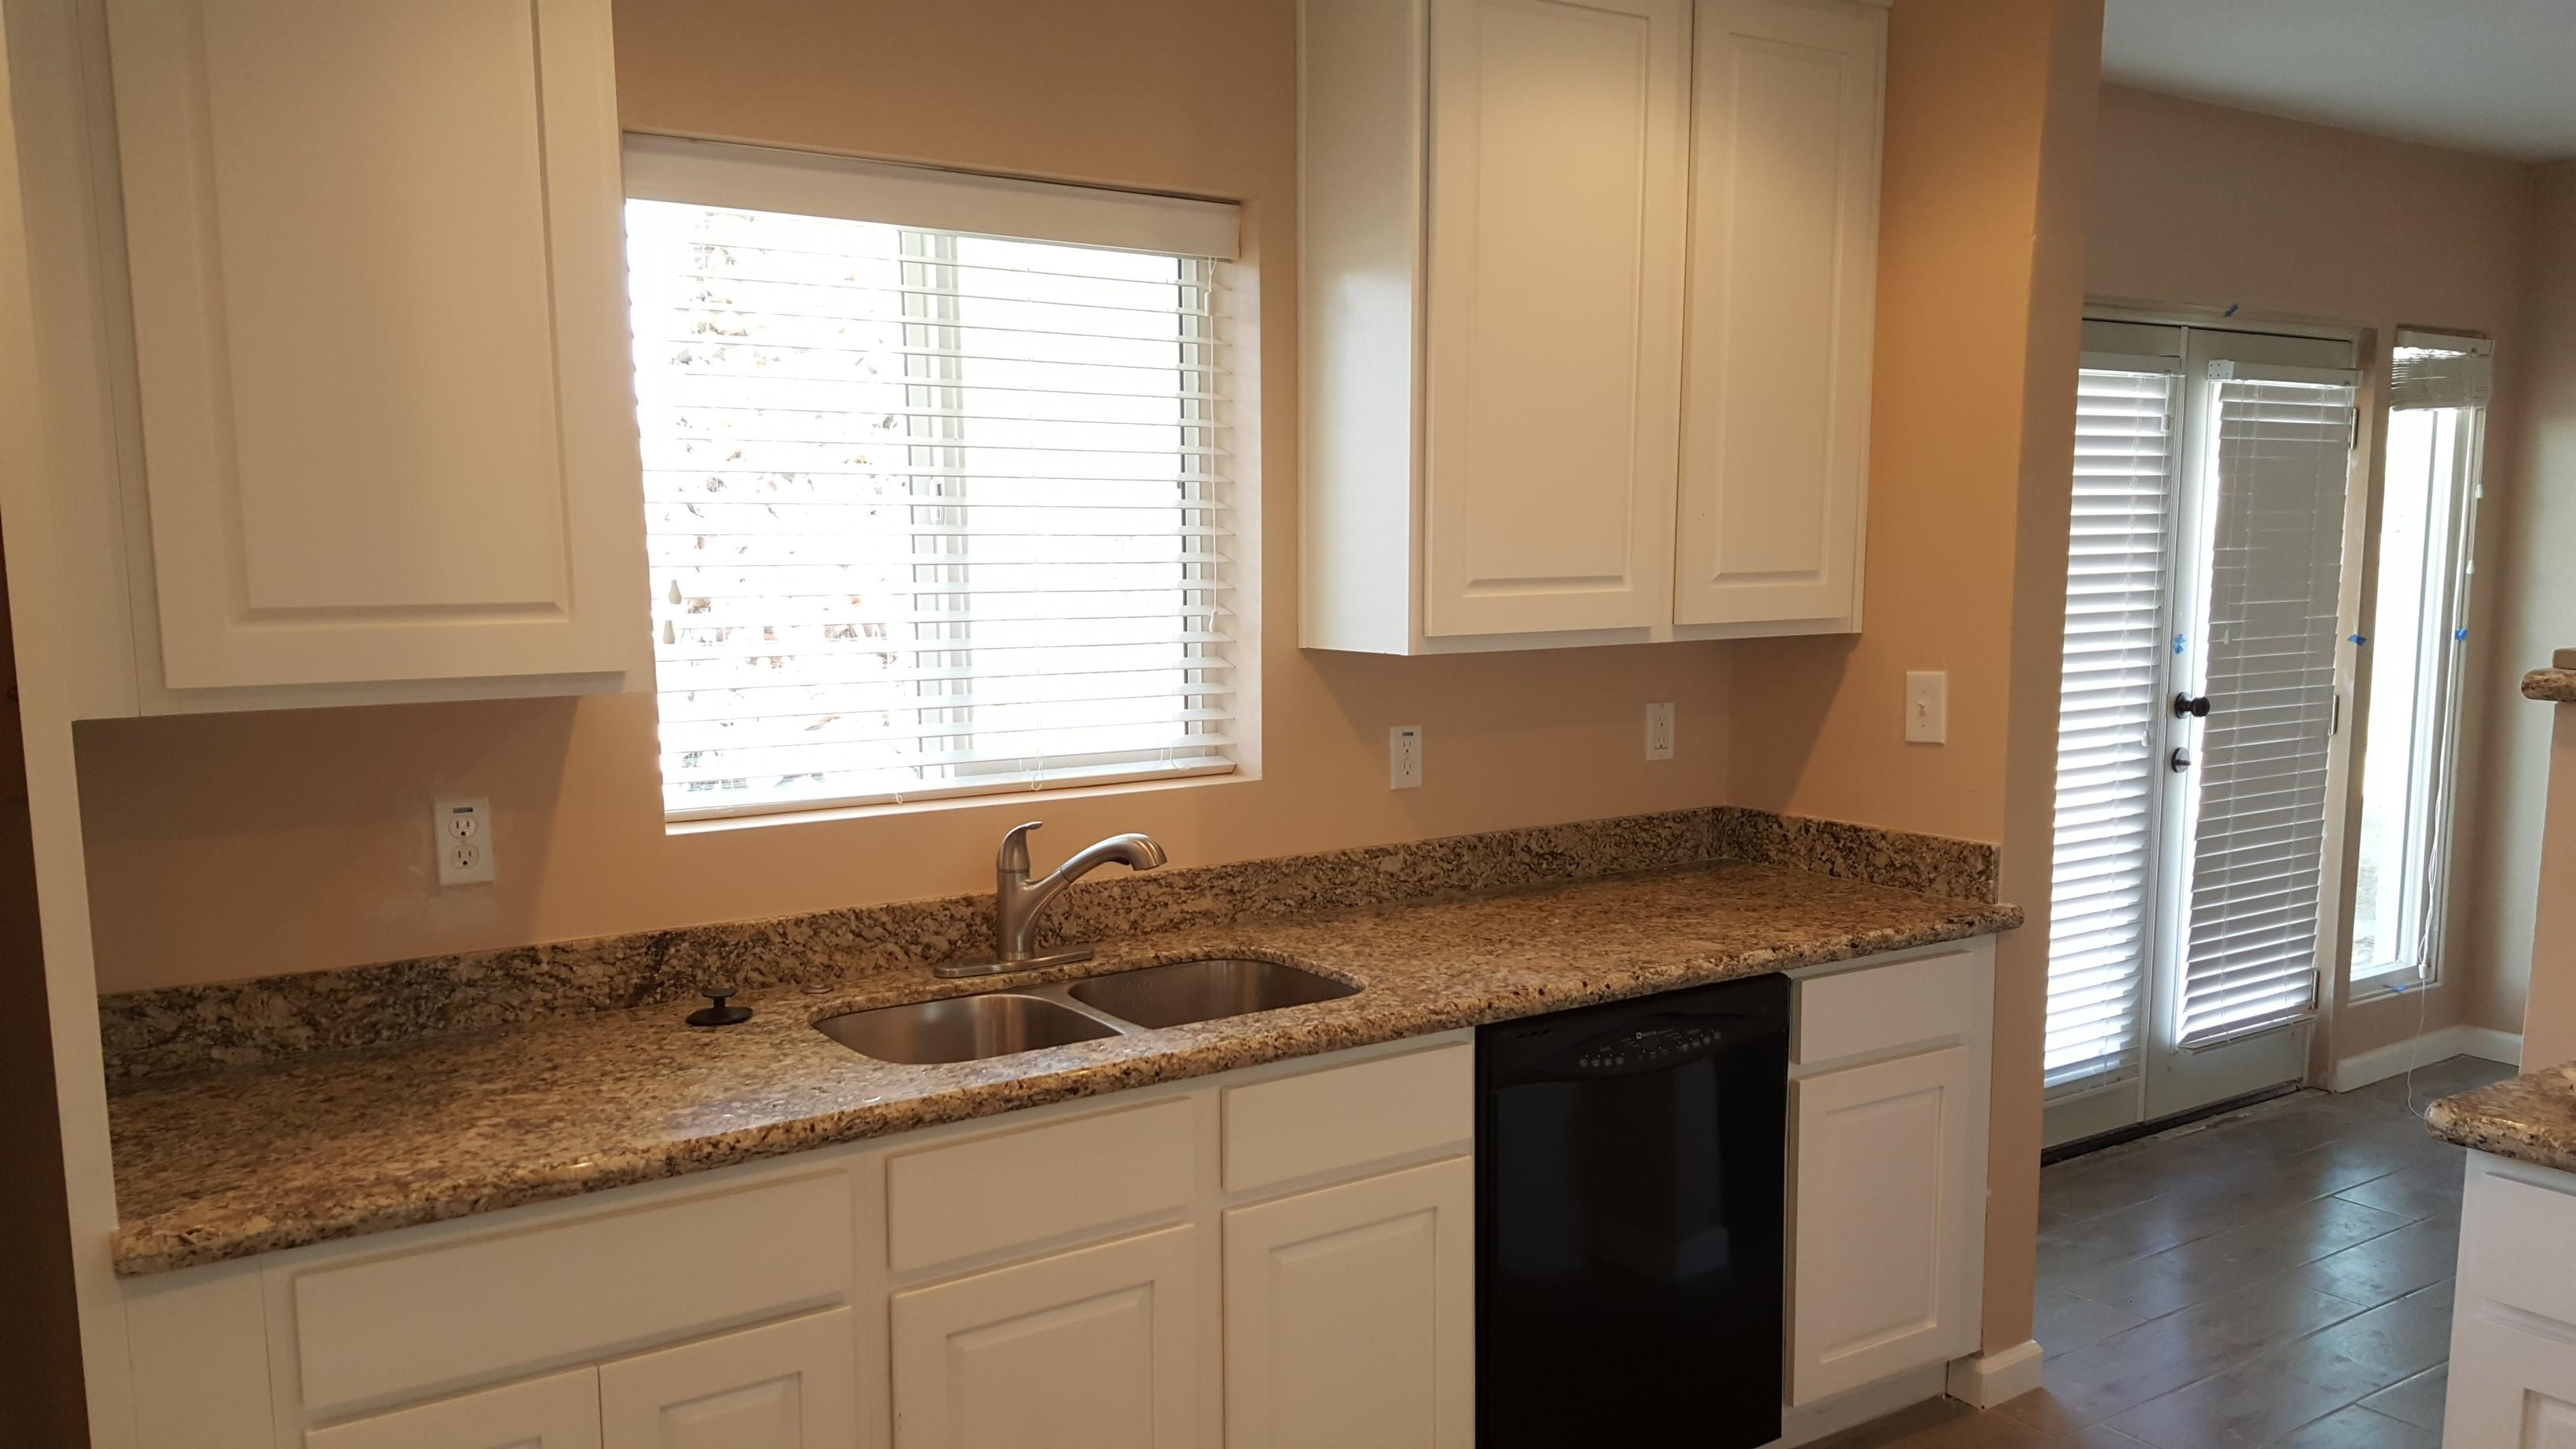 In Home Are The Kitchen And Bathrooms Well You Will Not Be In This Home The  Kitchen Has All New Plumbing Cabinets And Granite Counters